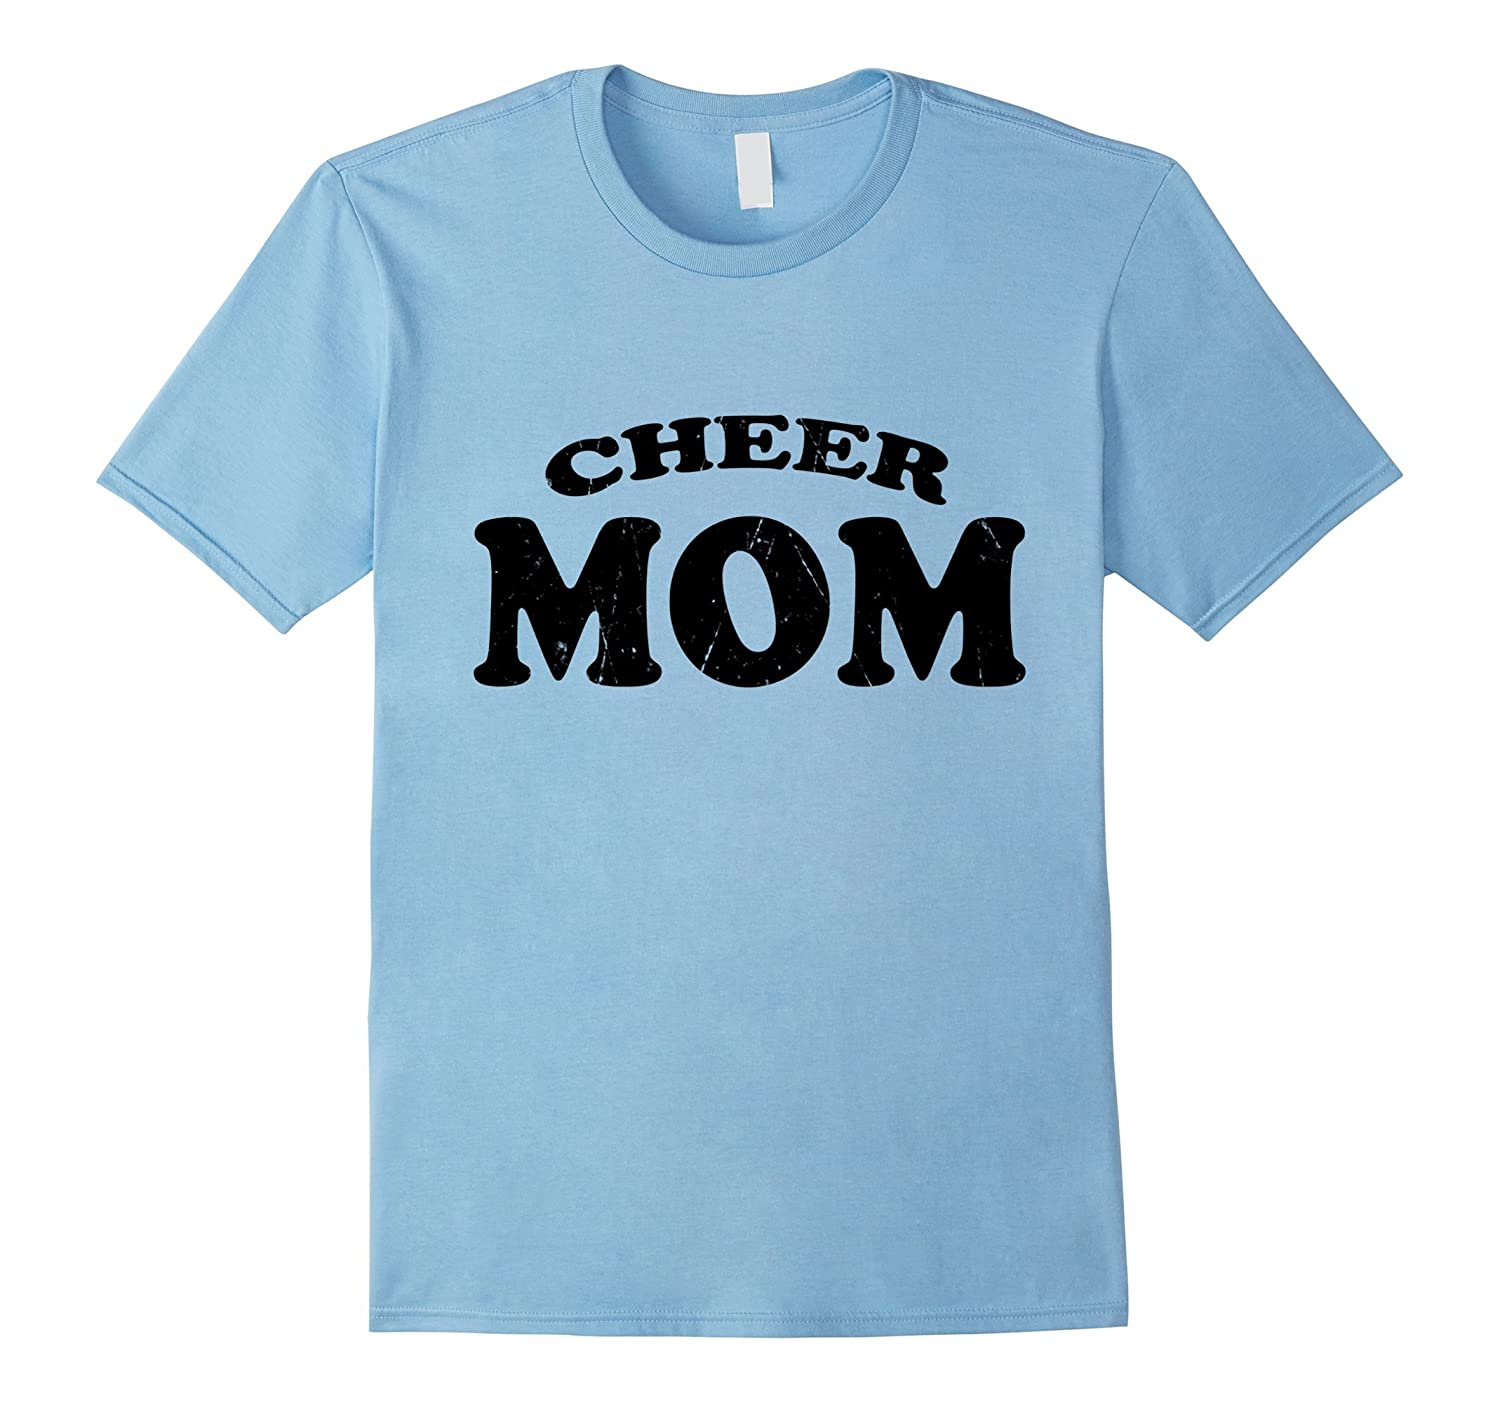 Cheer Mom Team Squad Cheerleader Mother Cute Funny T-Shirt- TPT